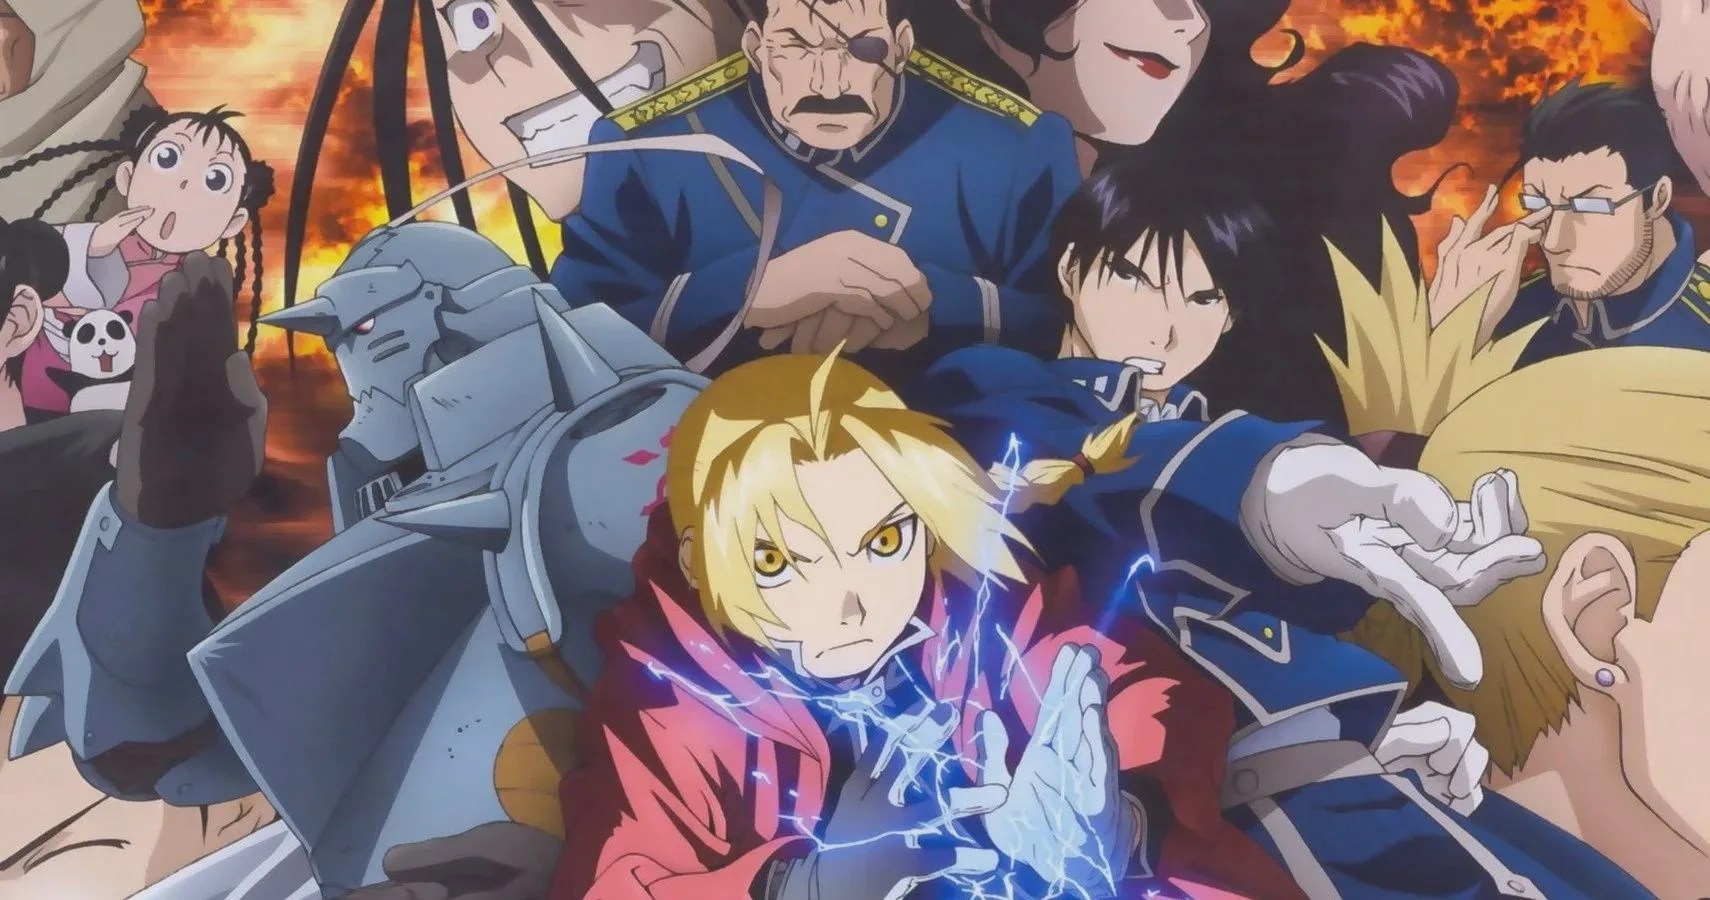 Fullmetal Alchemist: Roy Mustang Corrupted Use Of Alchemy - TheDeadToons